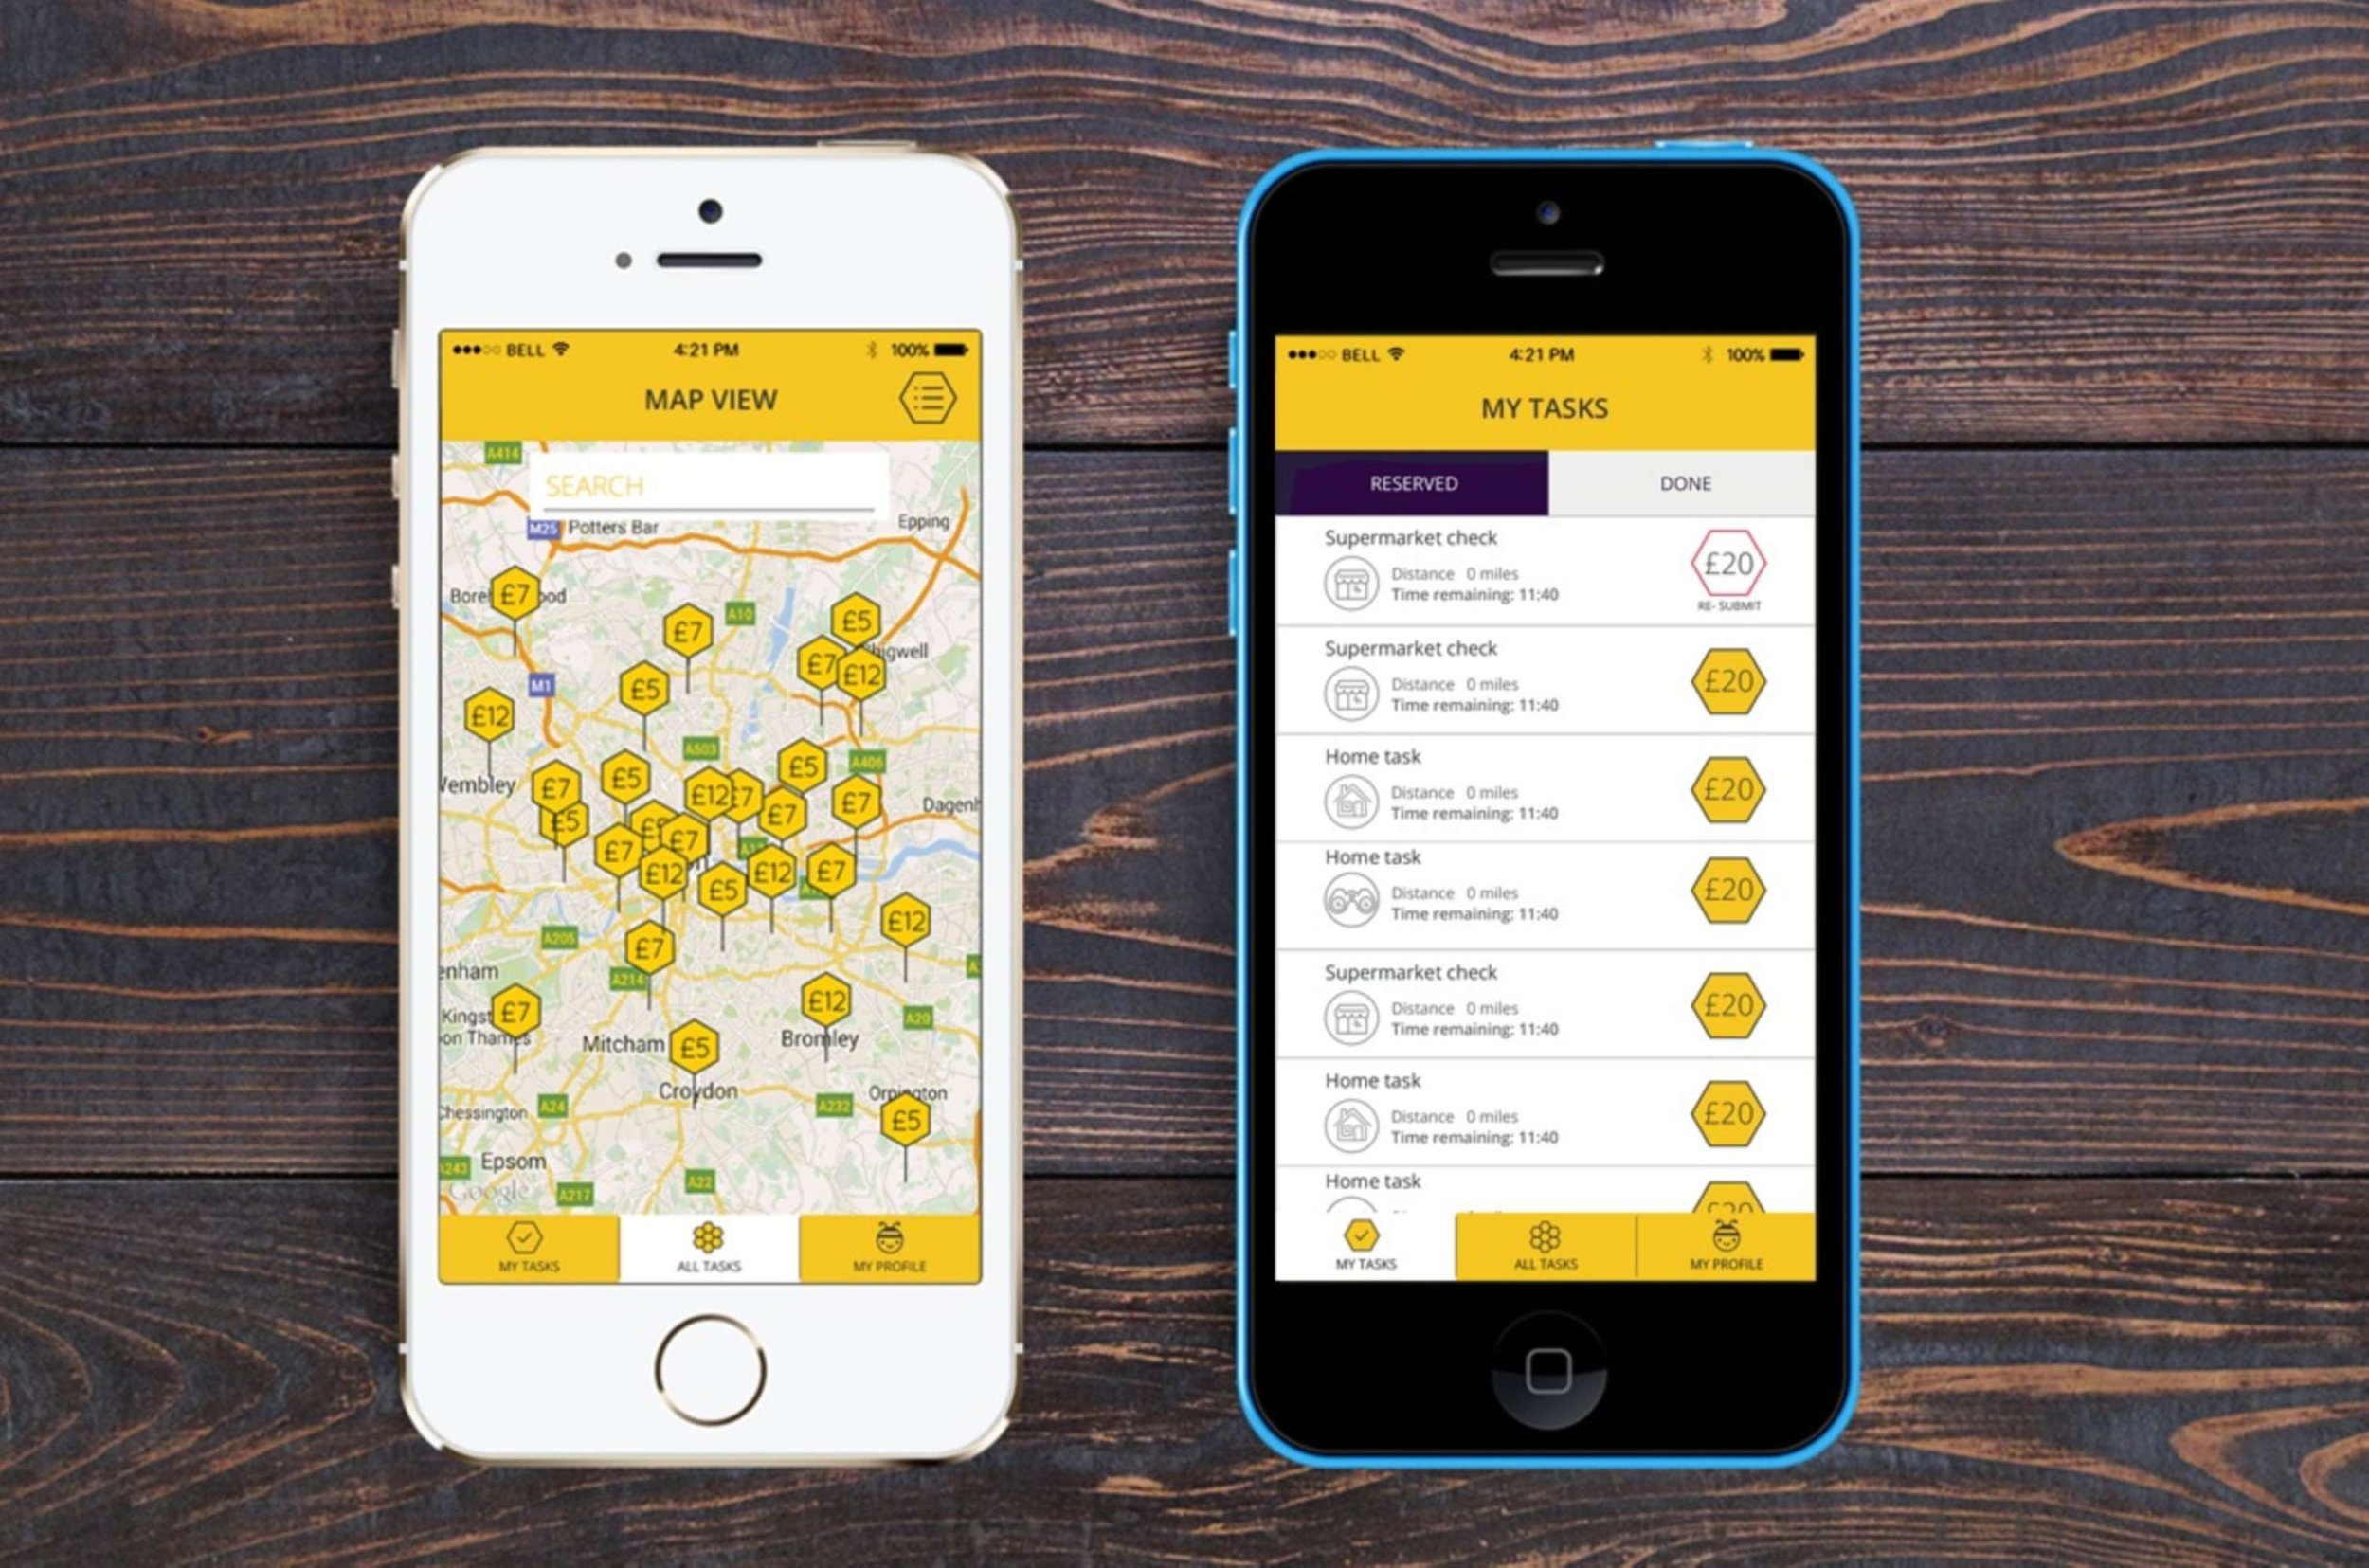 出典: https://the-dots.com/projects/streetbees-app-104639